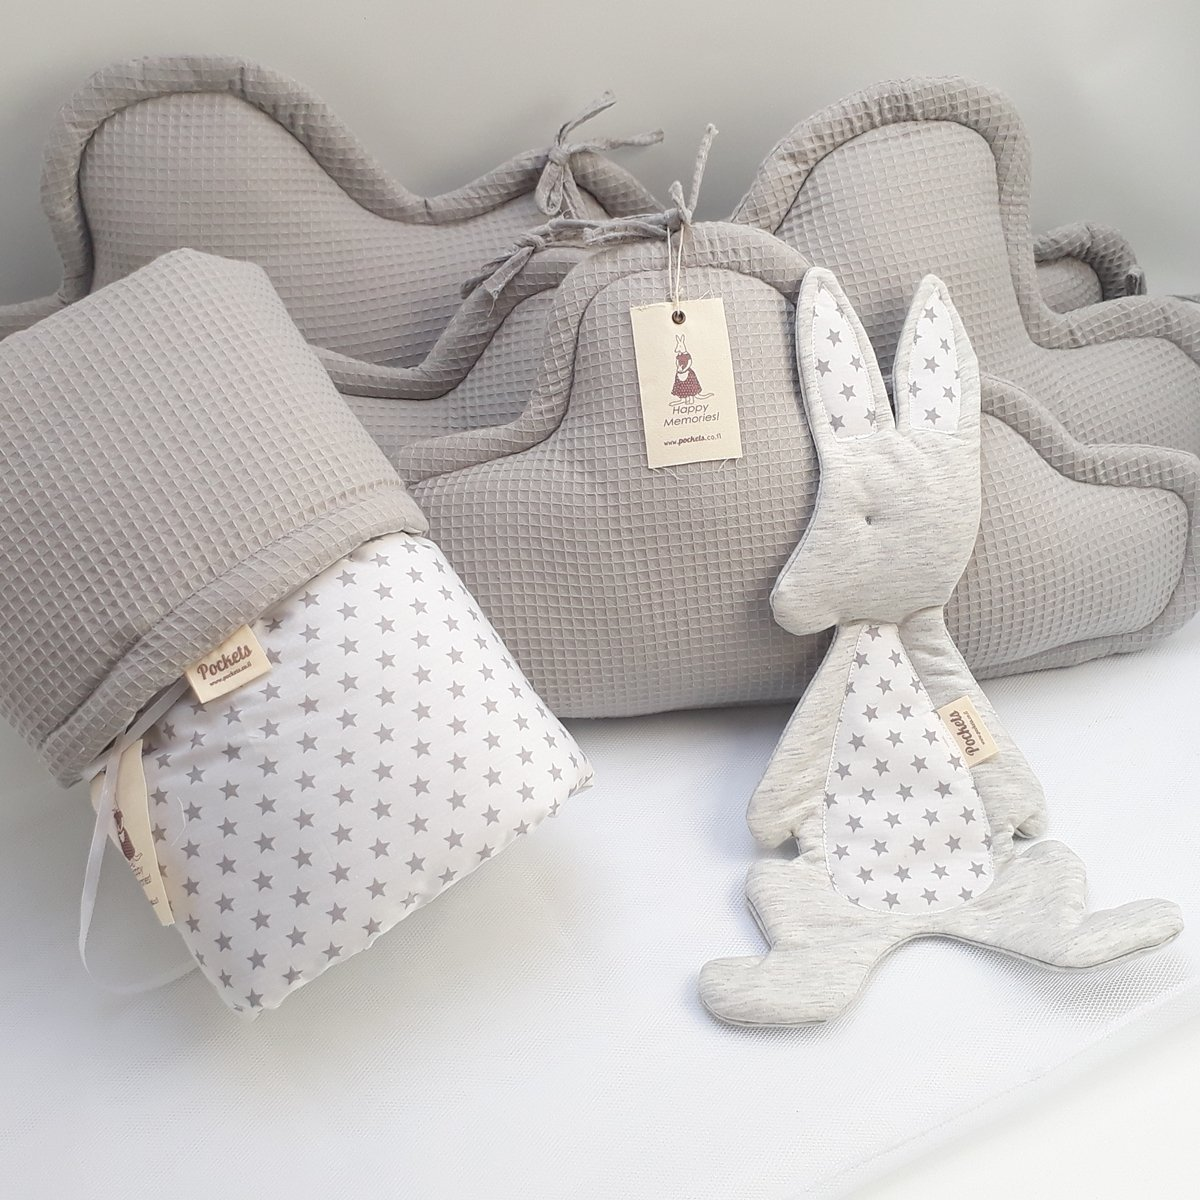 Image of 5 Piece Bedding Set - 3 clouds pillows bumper + blanket + baby lovey for Baby Crib, baby cot, baby bed- grey Home and Kitchen